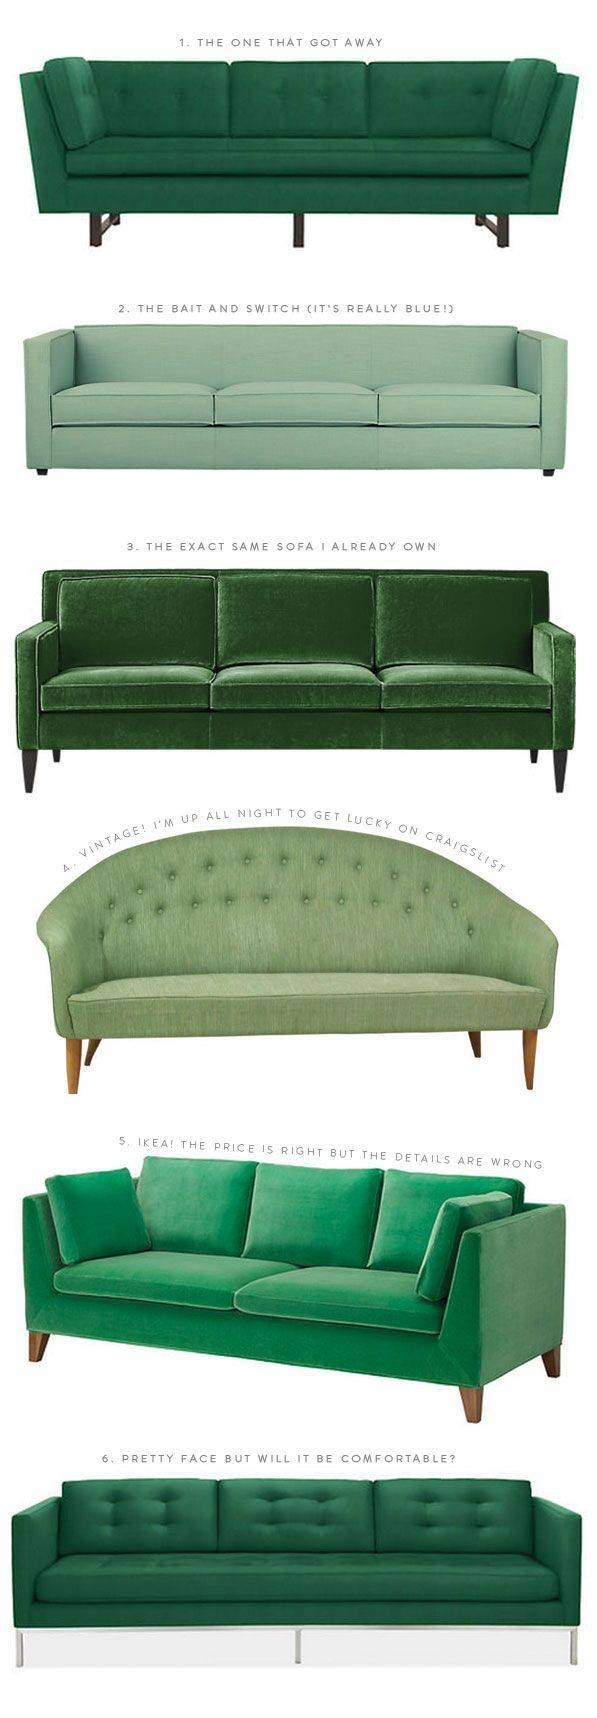 308 Best Sofas & Chairs   Ahhhhh! Images On Pinterest | Sofas Pertaining To Chintz Sofas And Chairs (Photo 24 of 25)